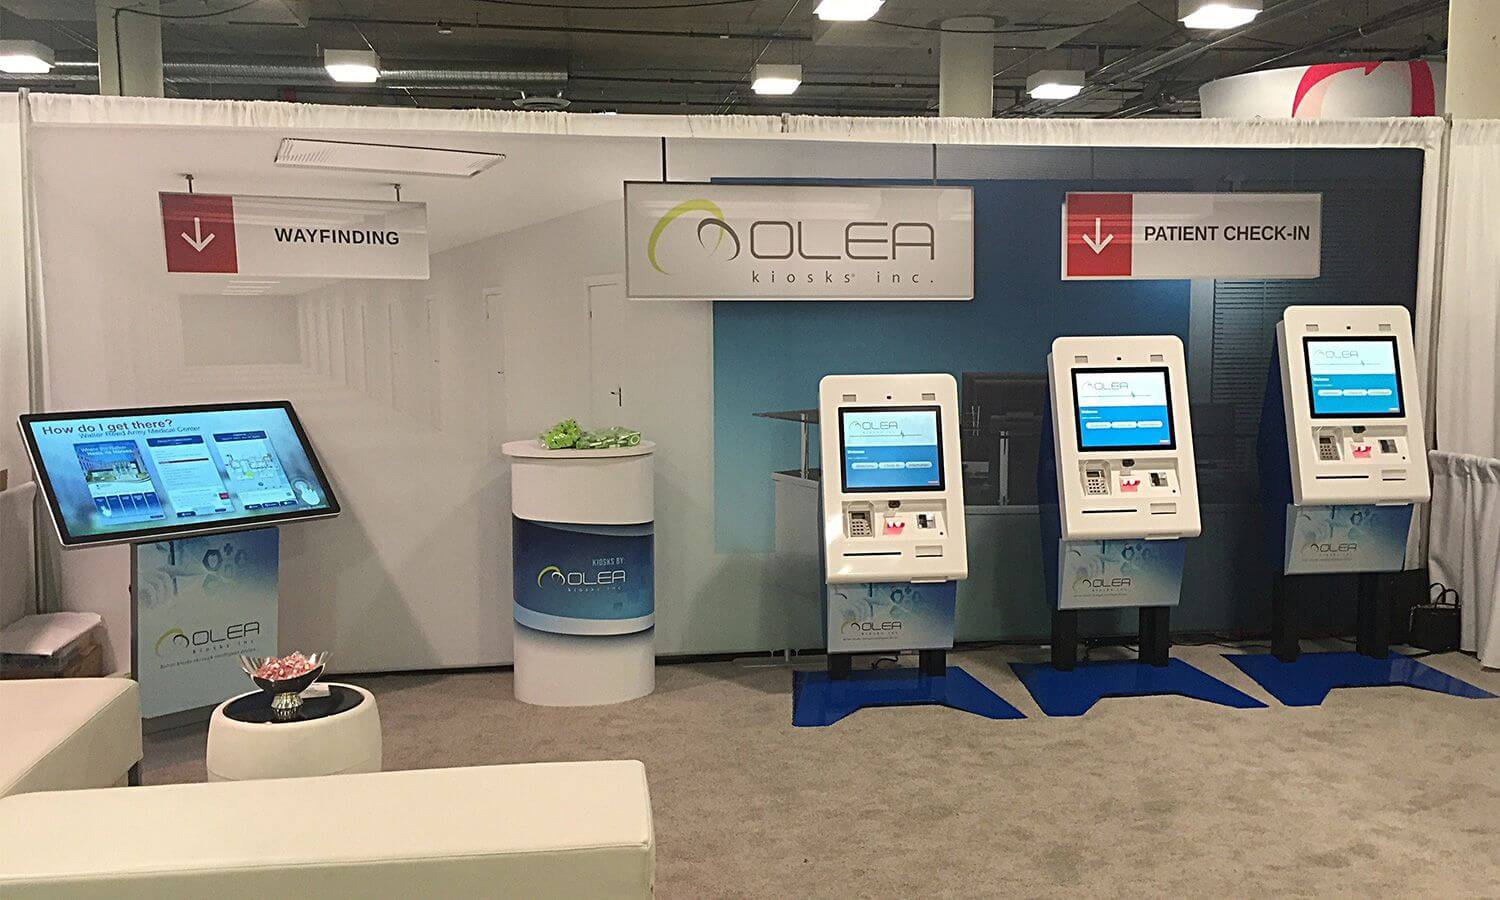 kiosk in healthcare industry